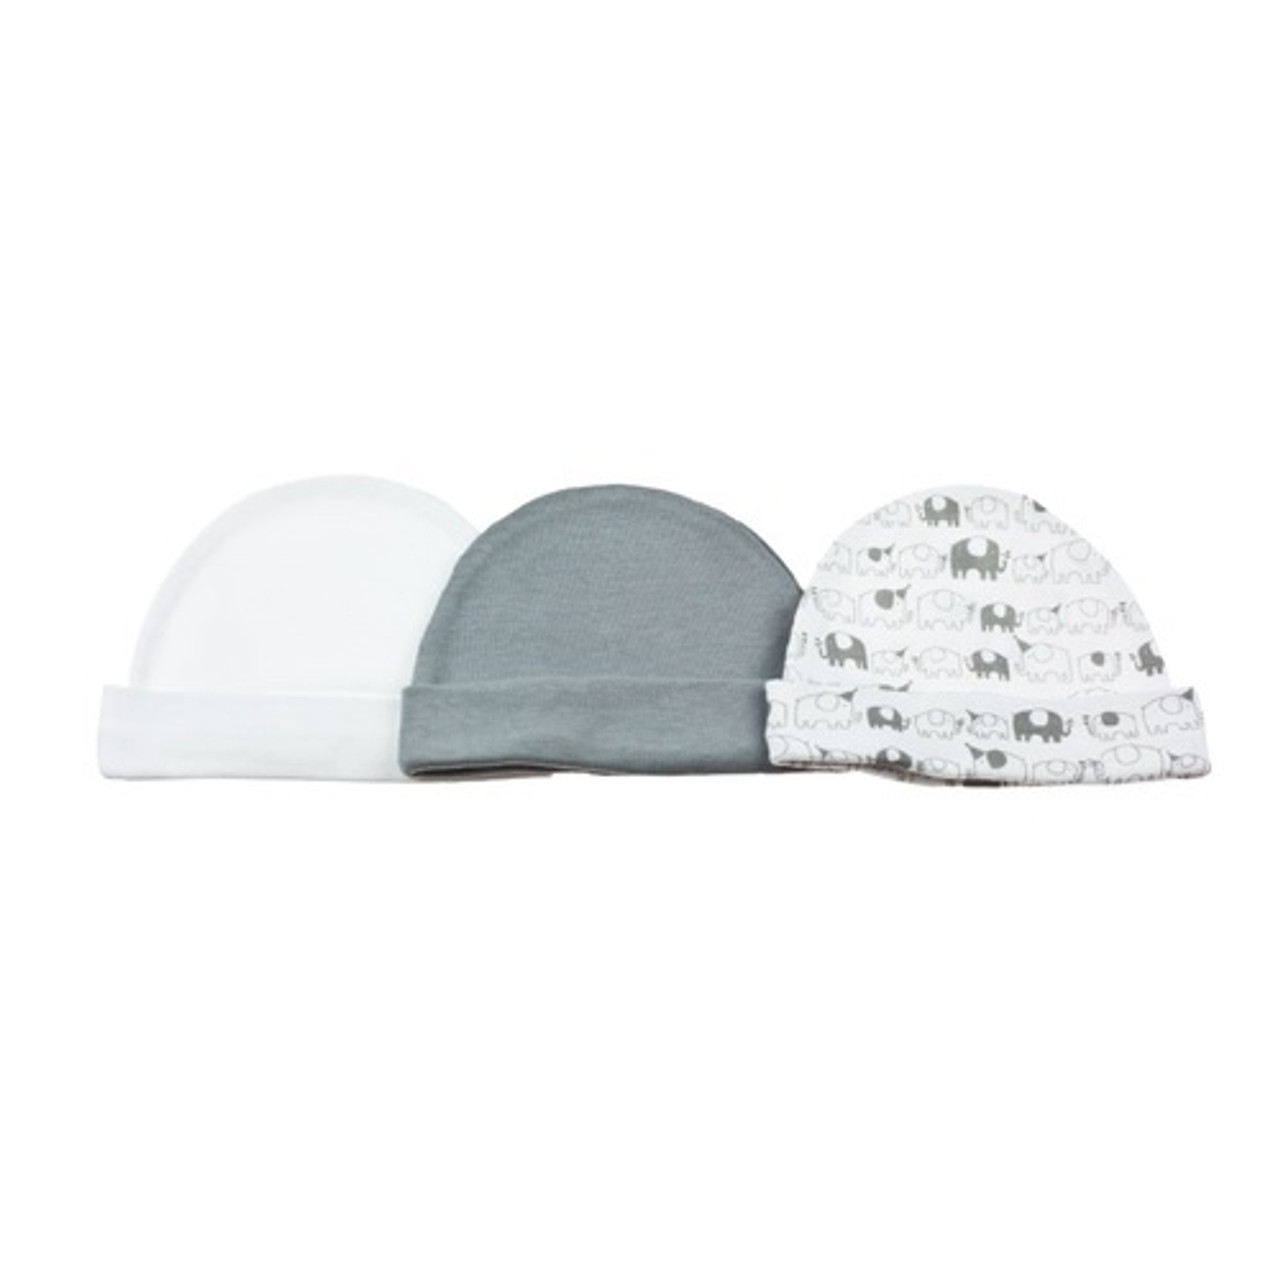 Playette Newborn Fashion Beanies 3pk at Baby Barn Discounts Newborn fashion beanie style cap that will fit a your newborn.